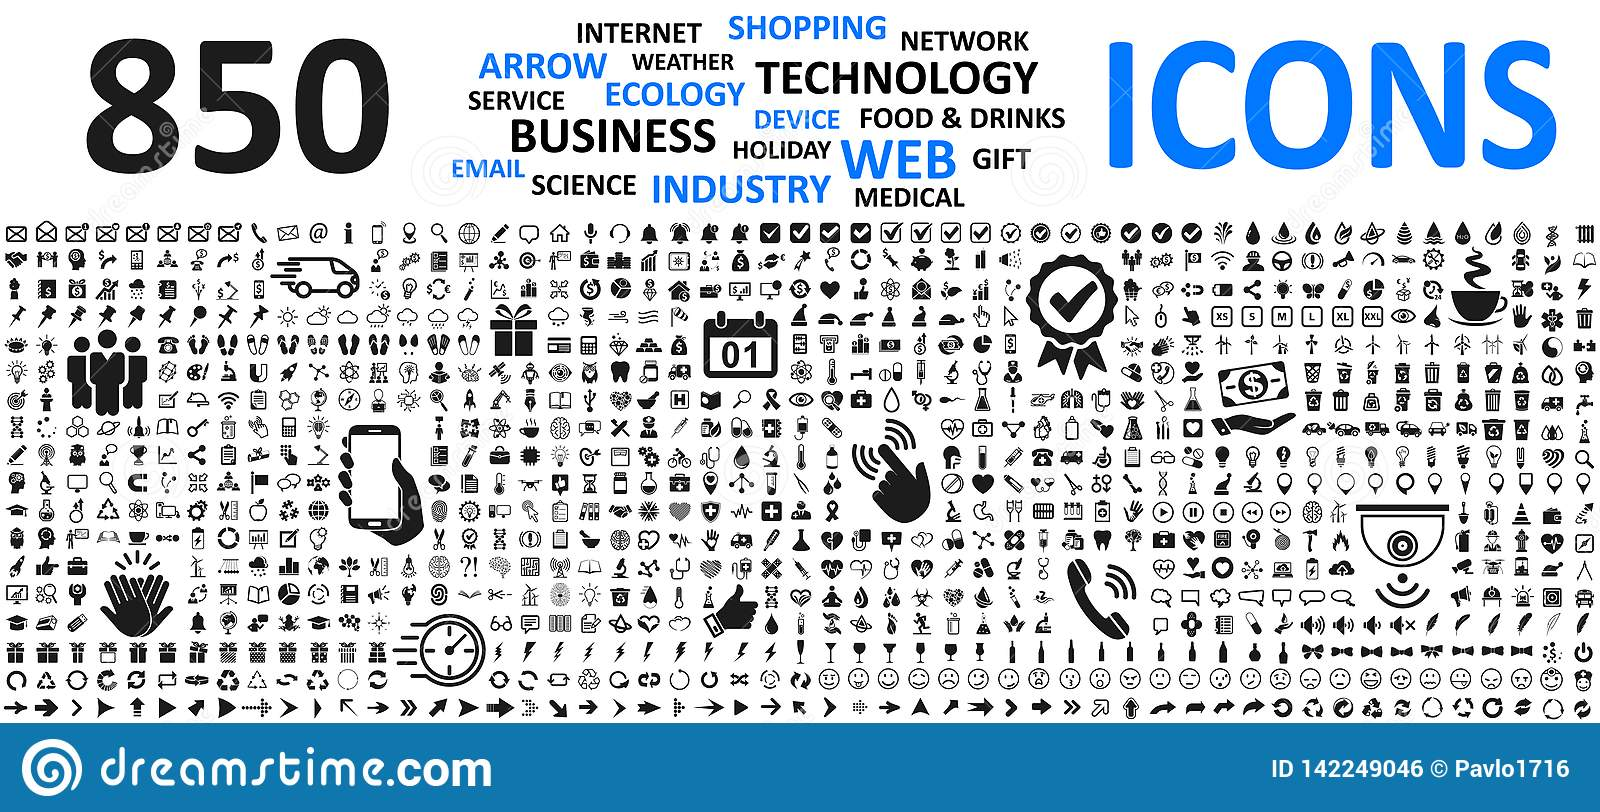 Big set icons: business, shopping, device, technology, medical, ecology, food & drink and many more for any cases of life using